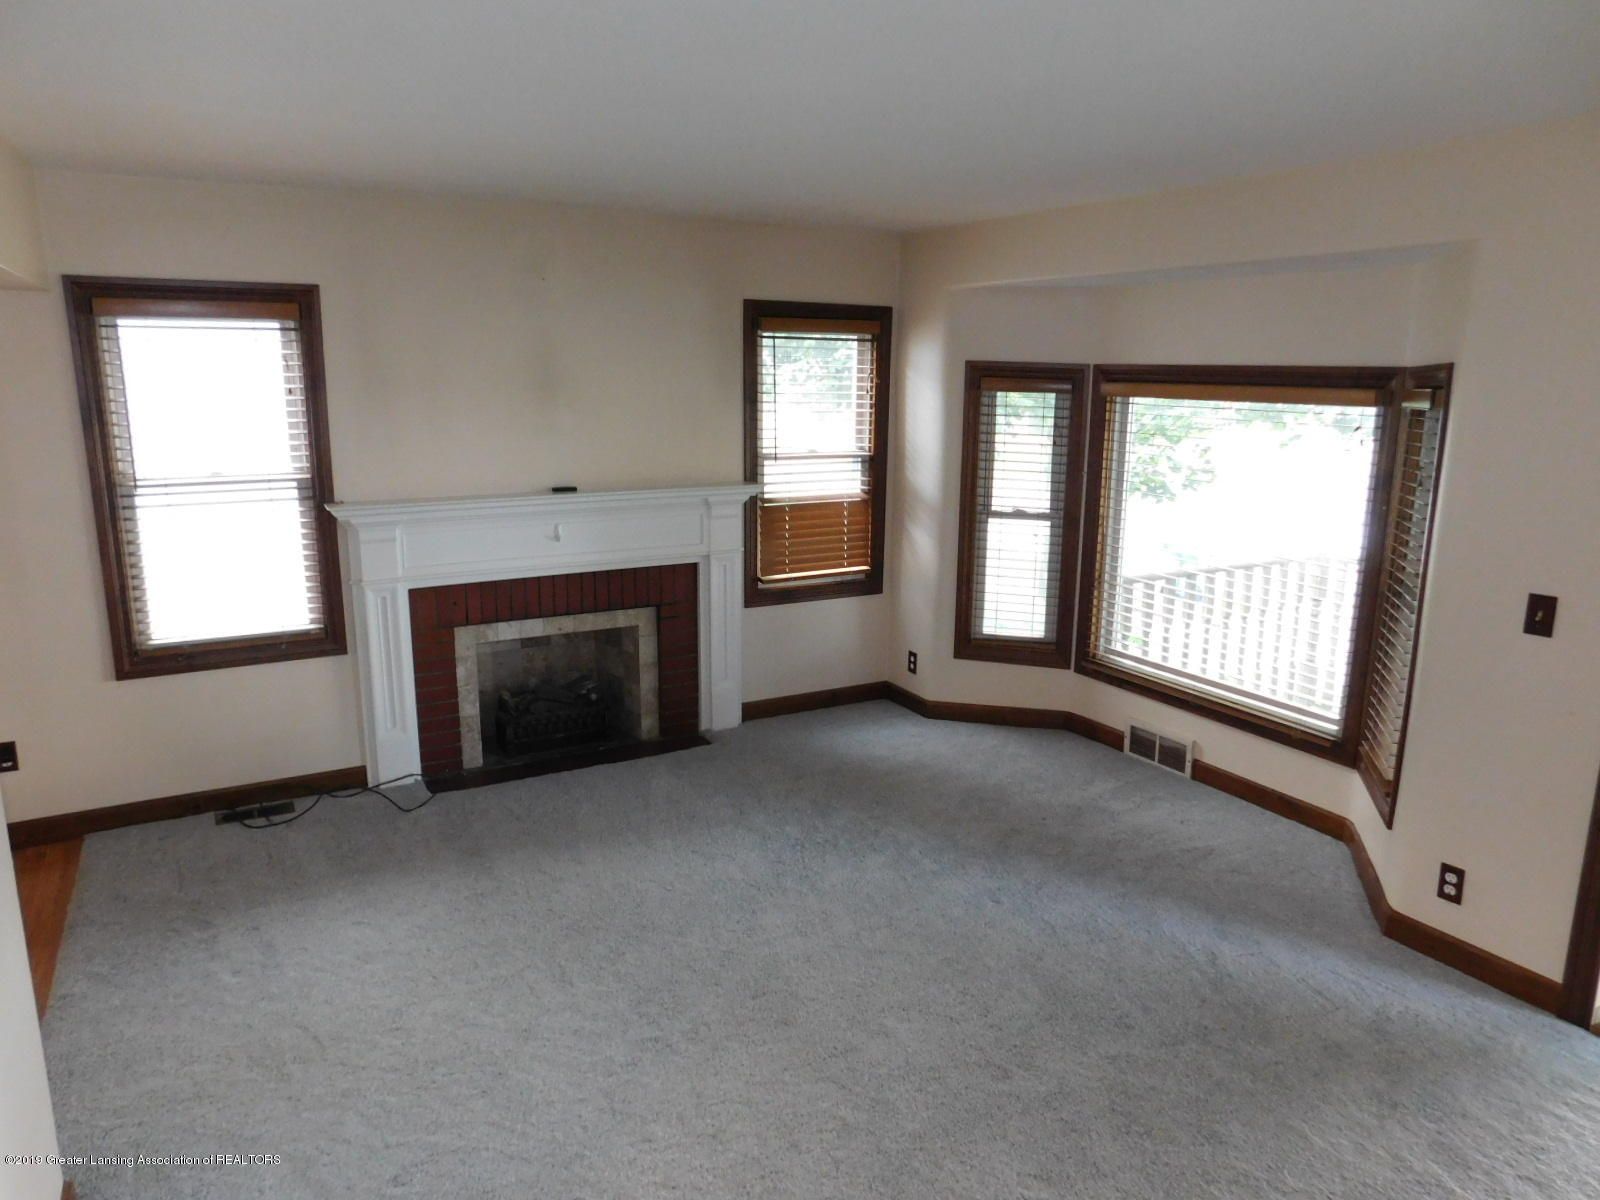 725 Merrill Ave - LIVING ROOM - 7